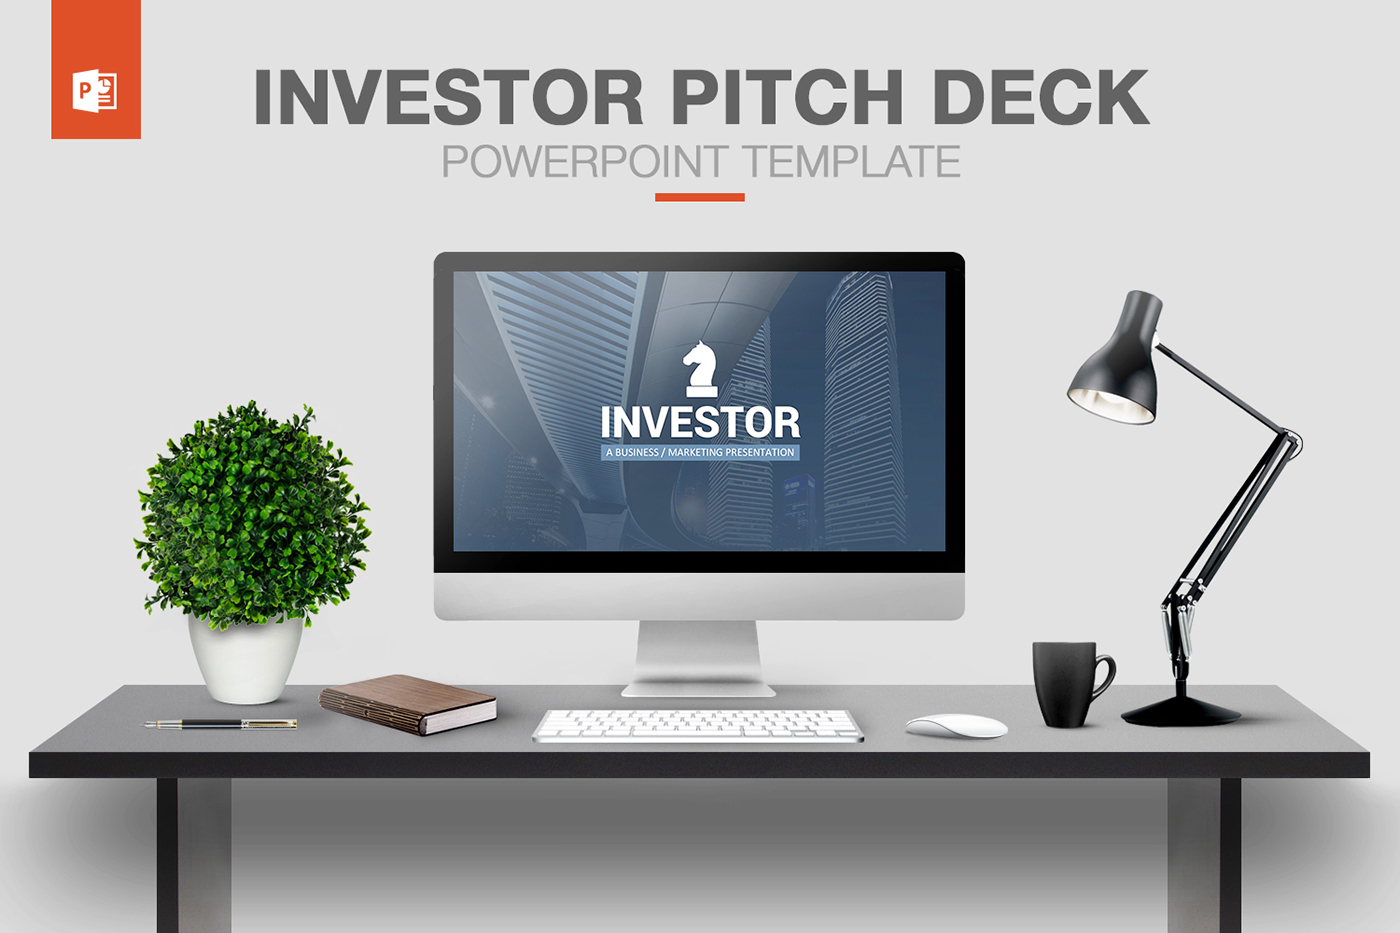 investor pitch deck powerpoint template on behance